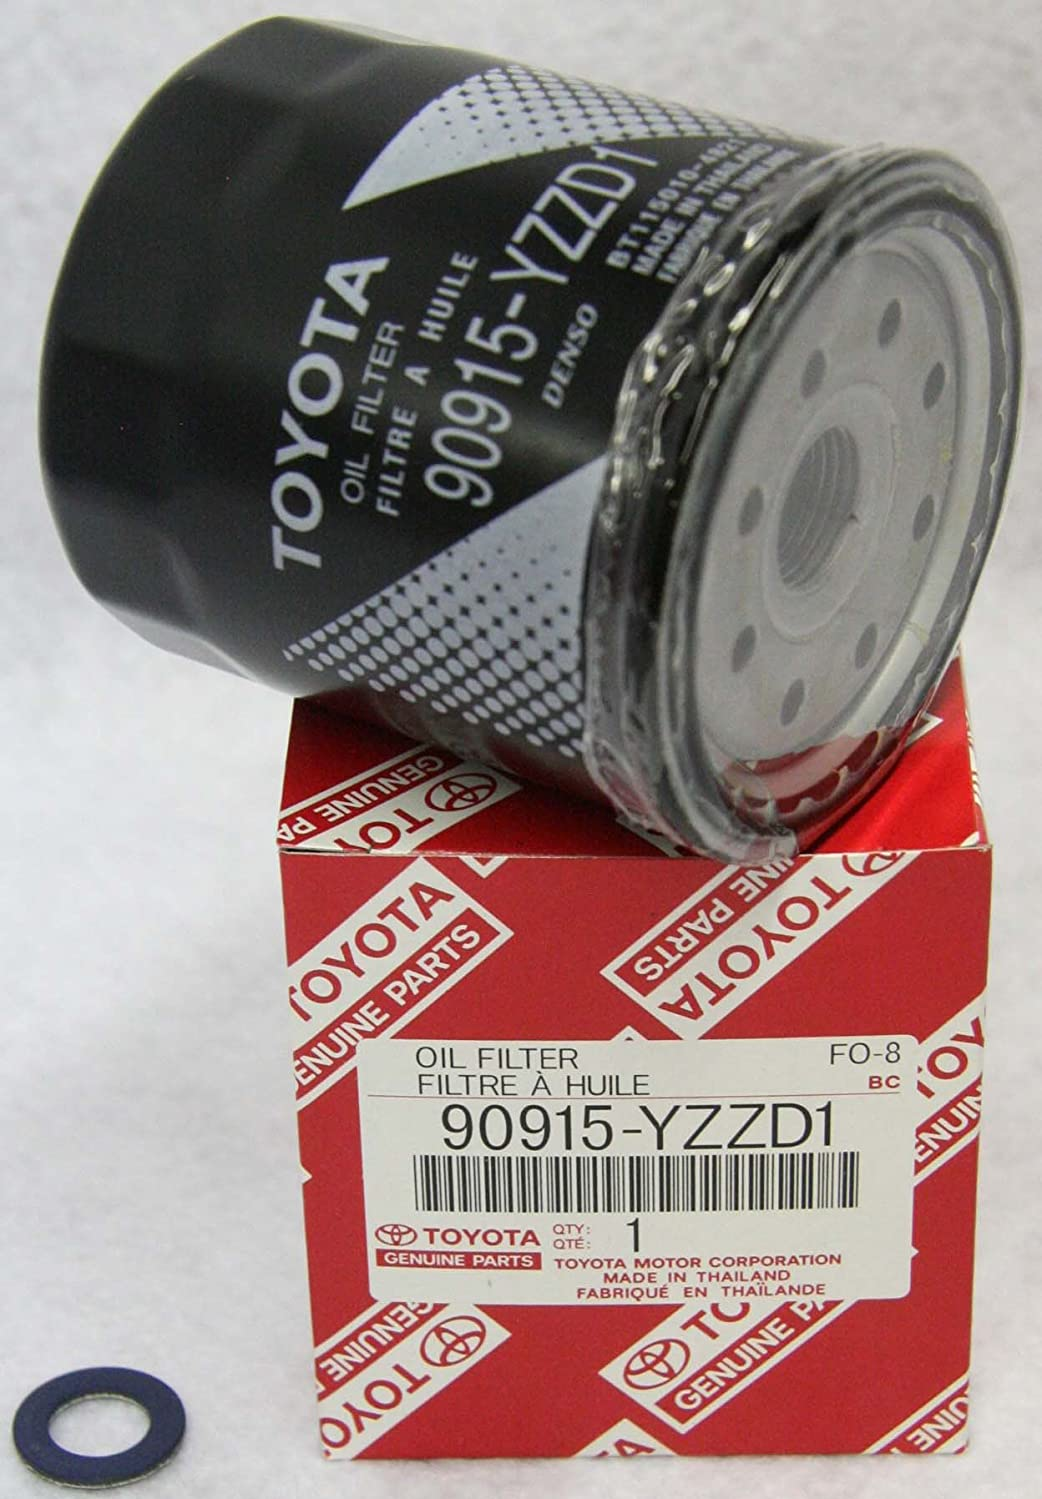 Toyota Genuine Parts 90915-YZZD1 Oil Filter and 90430-12028 Oil Drain Plug Gasket Oil Change Kit 1 Case (QTY 10)